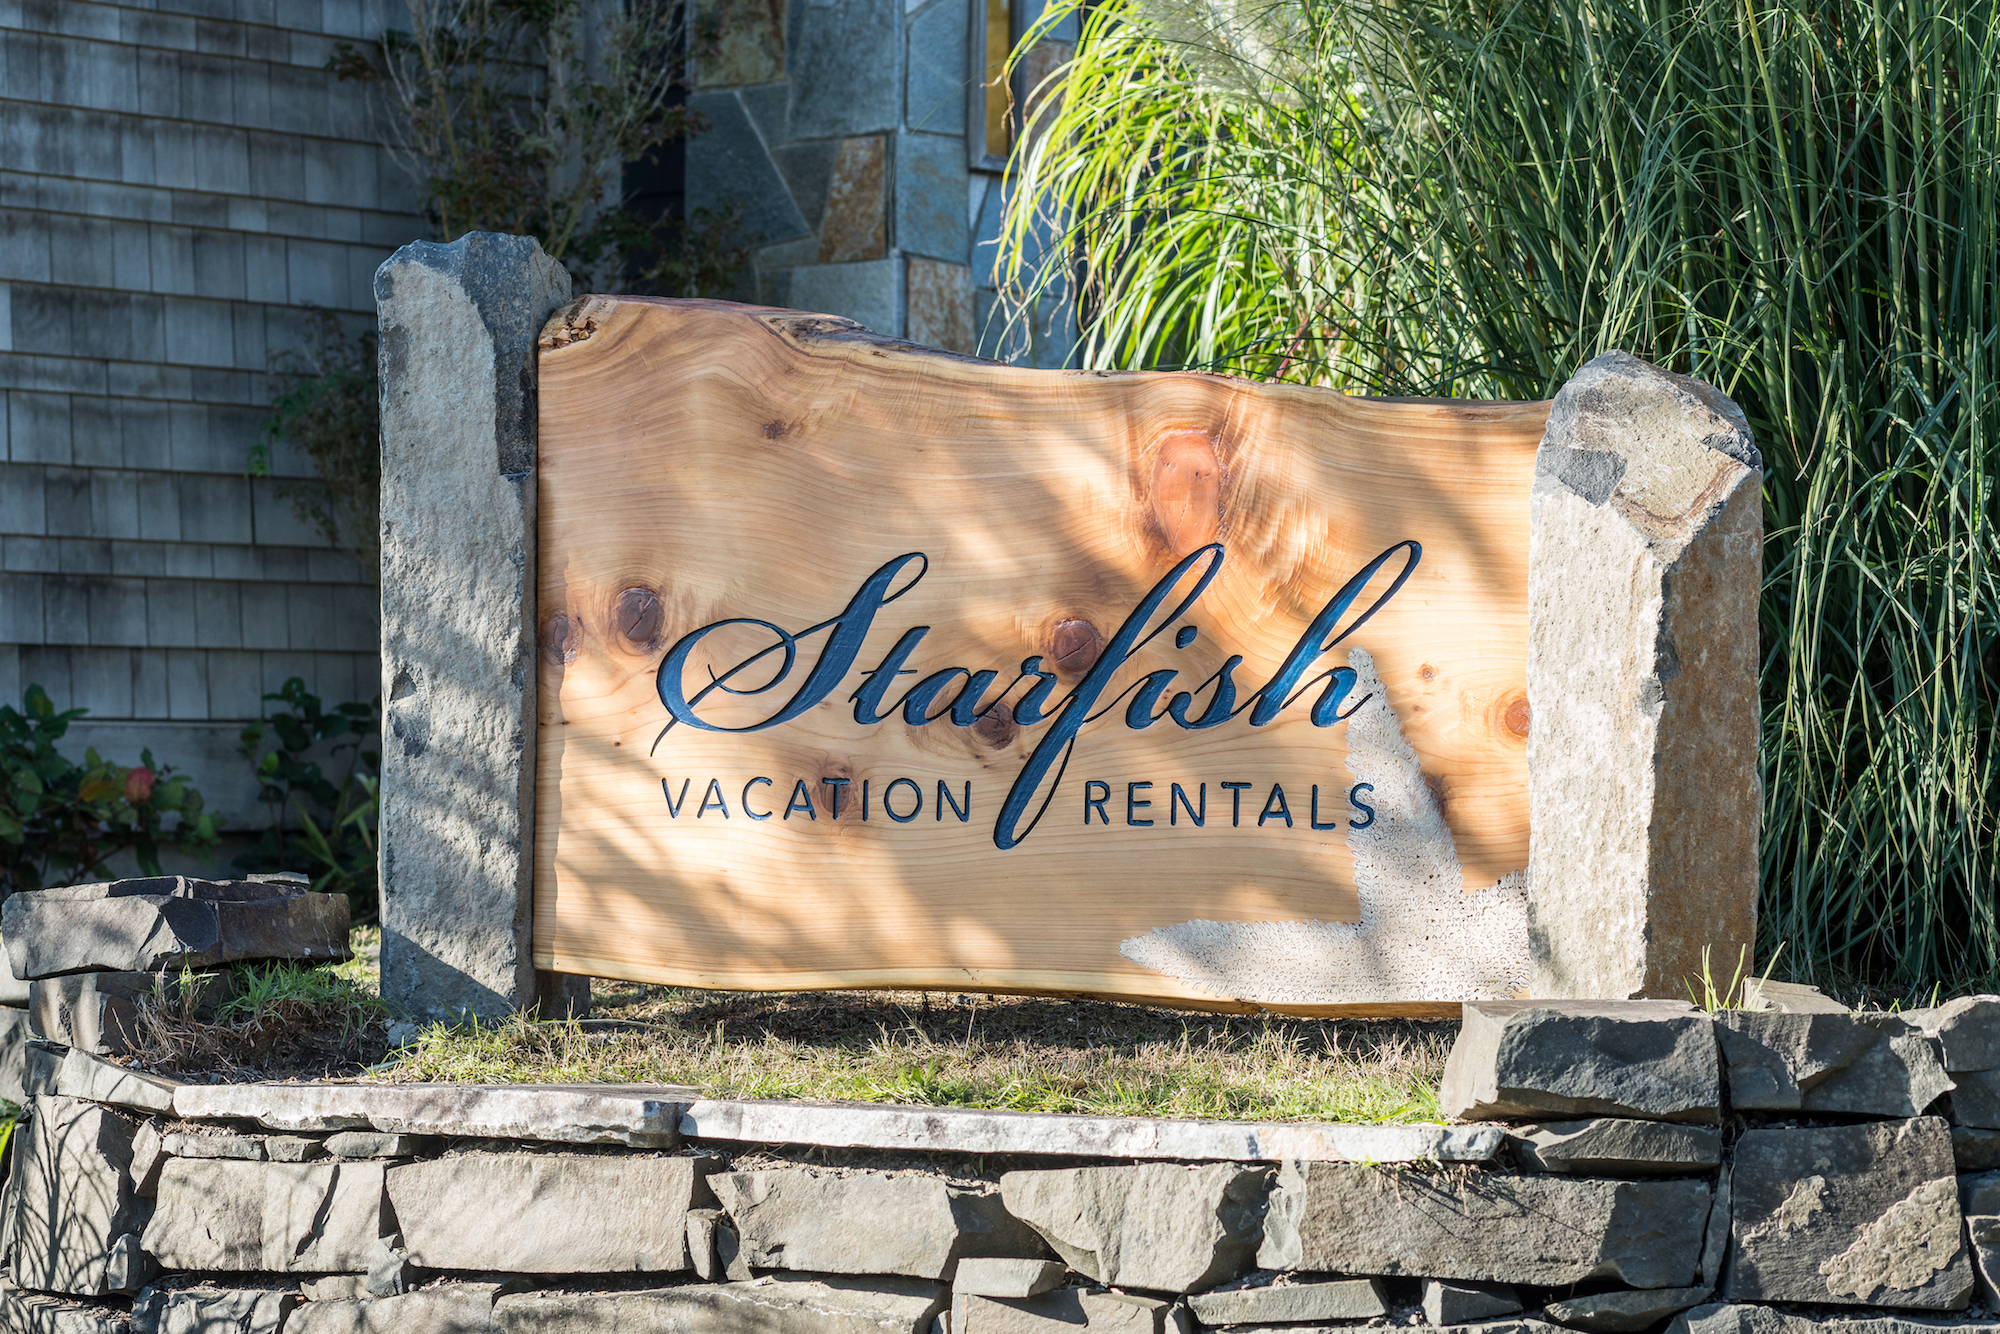 Starfish Vacation Rentals outdoor sign